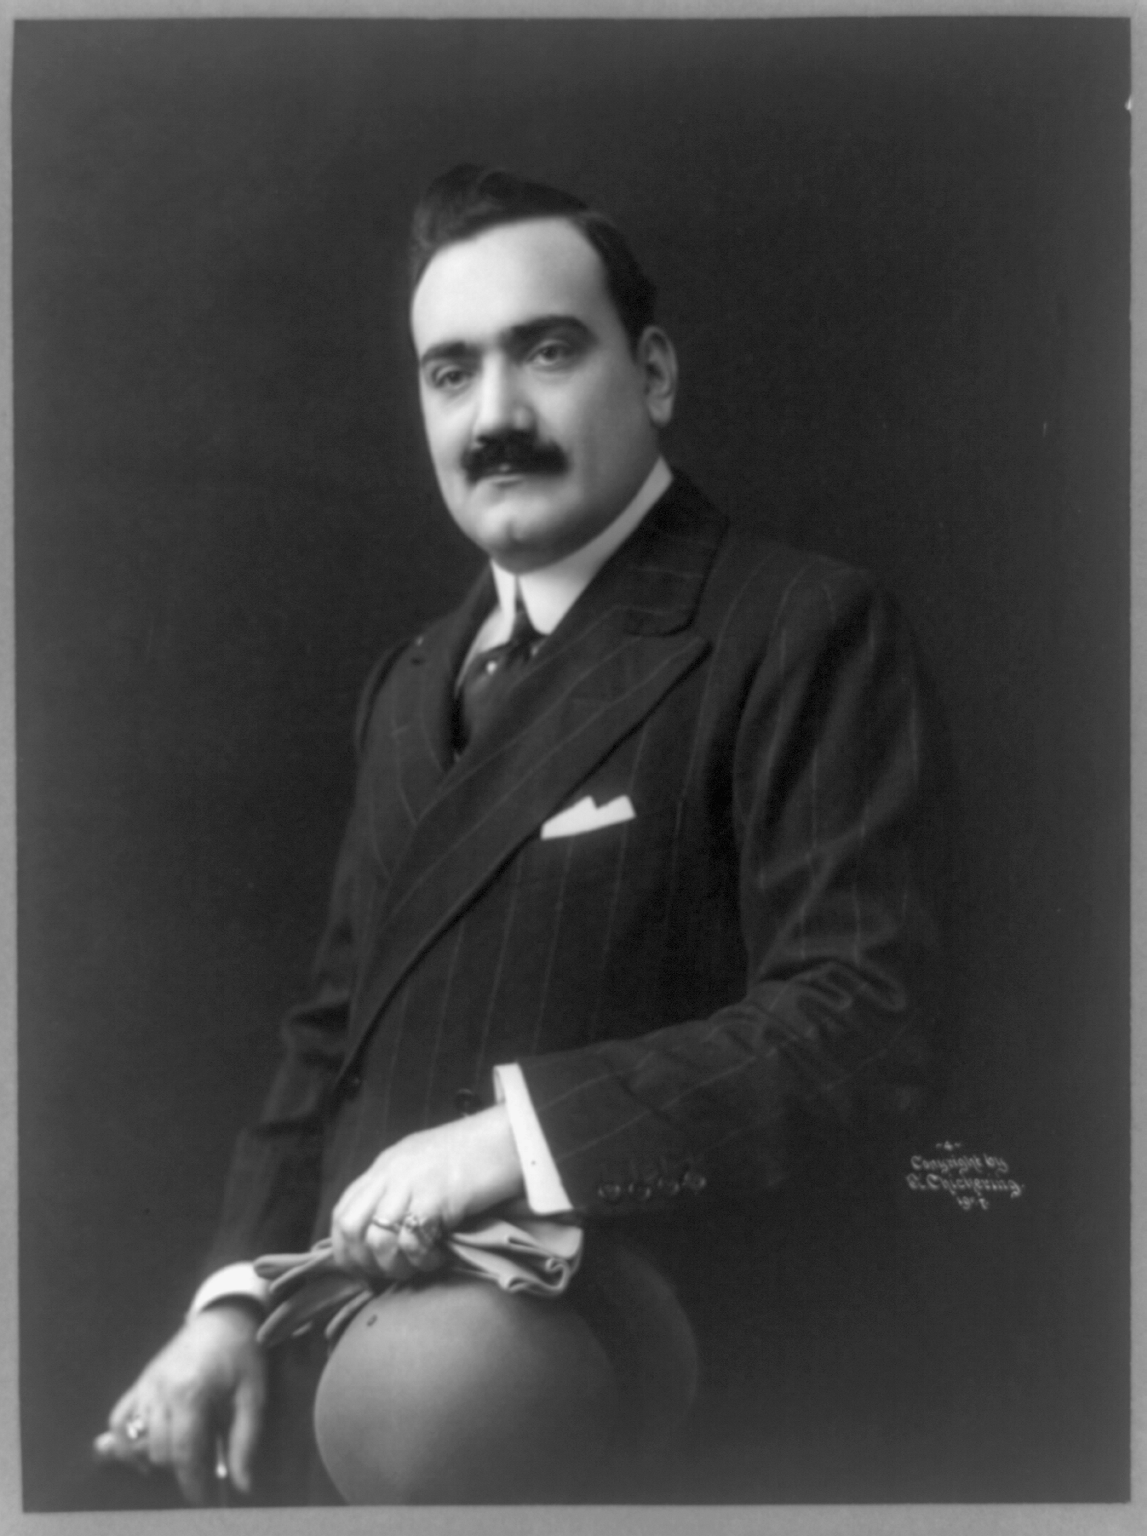 Enrico Caruso* Caruso - The Greatest Tenor In The World